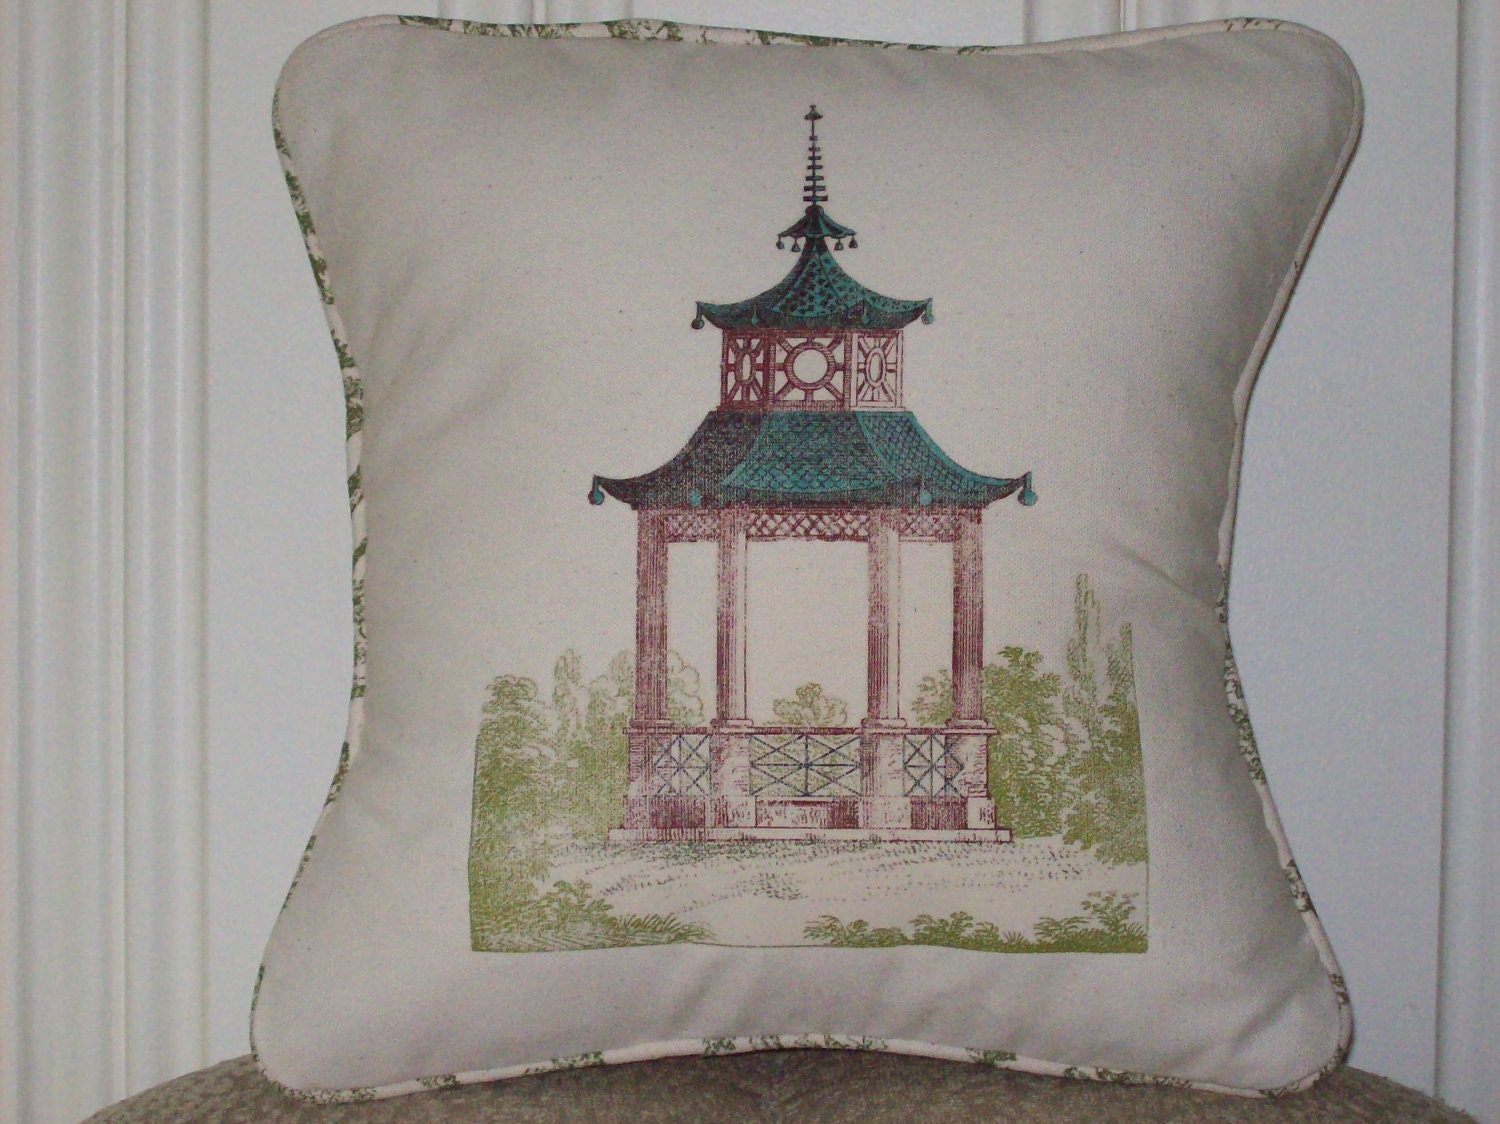 Vintage Shabby Chic Pillow Shams : shabby chic feed sack french country vintage by kreativbyerika